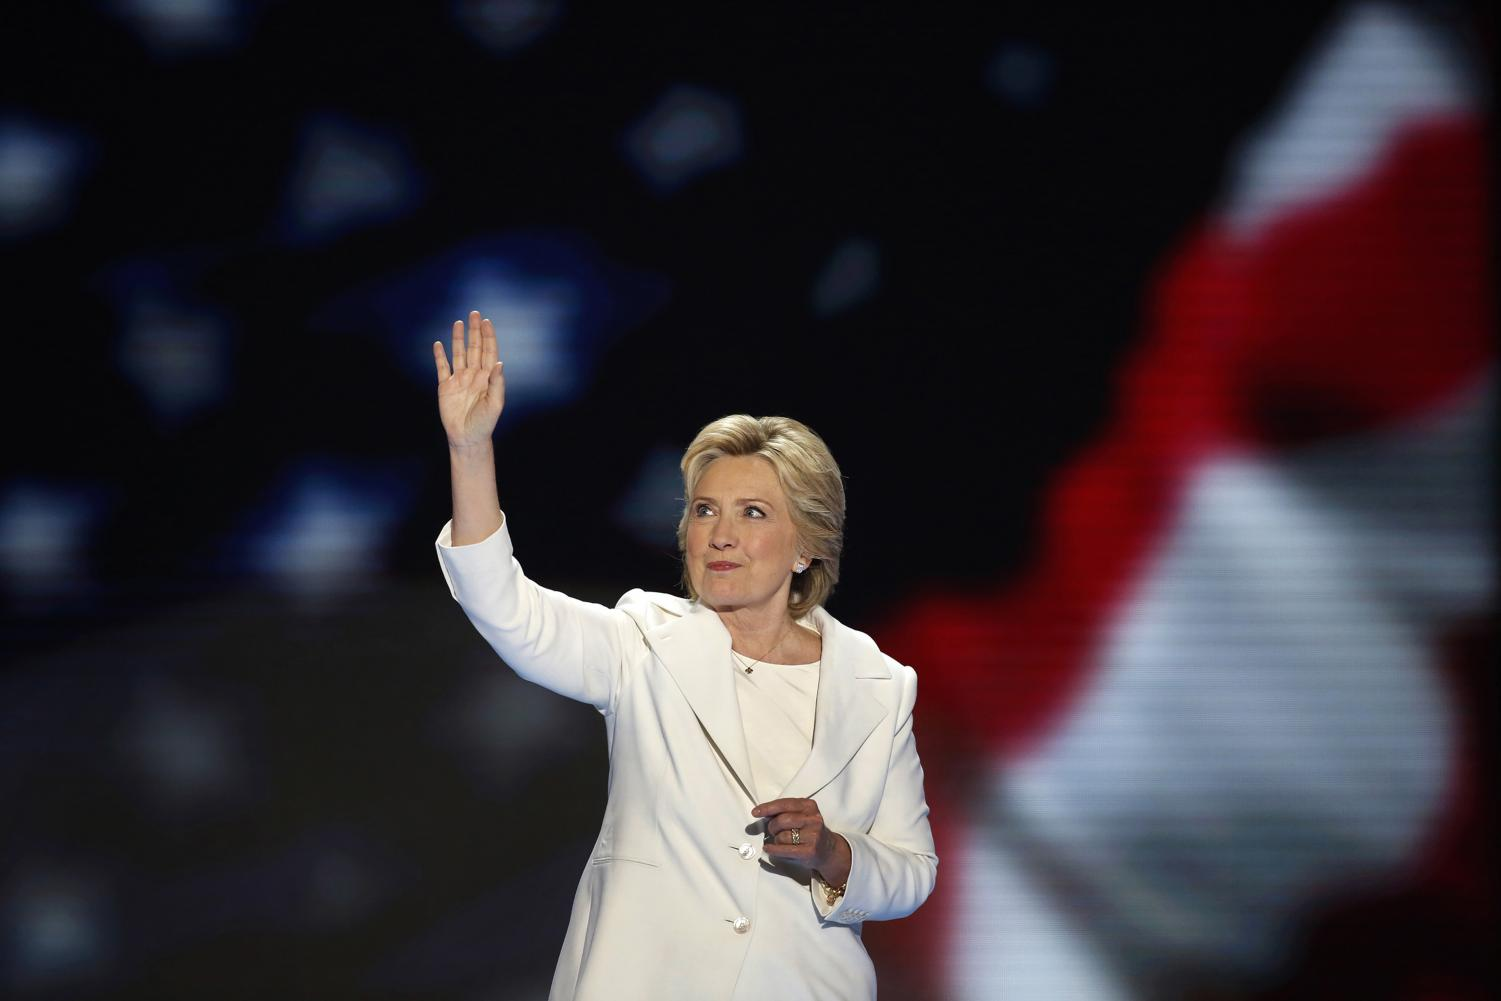 Hillary Clinton becomes the first woman to win the nomination for president from a major party in the United States on July 28, 2016. Columnist Noah emphasizes her absence in the public eye since November 2016.